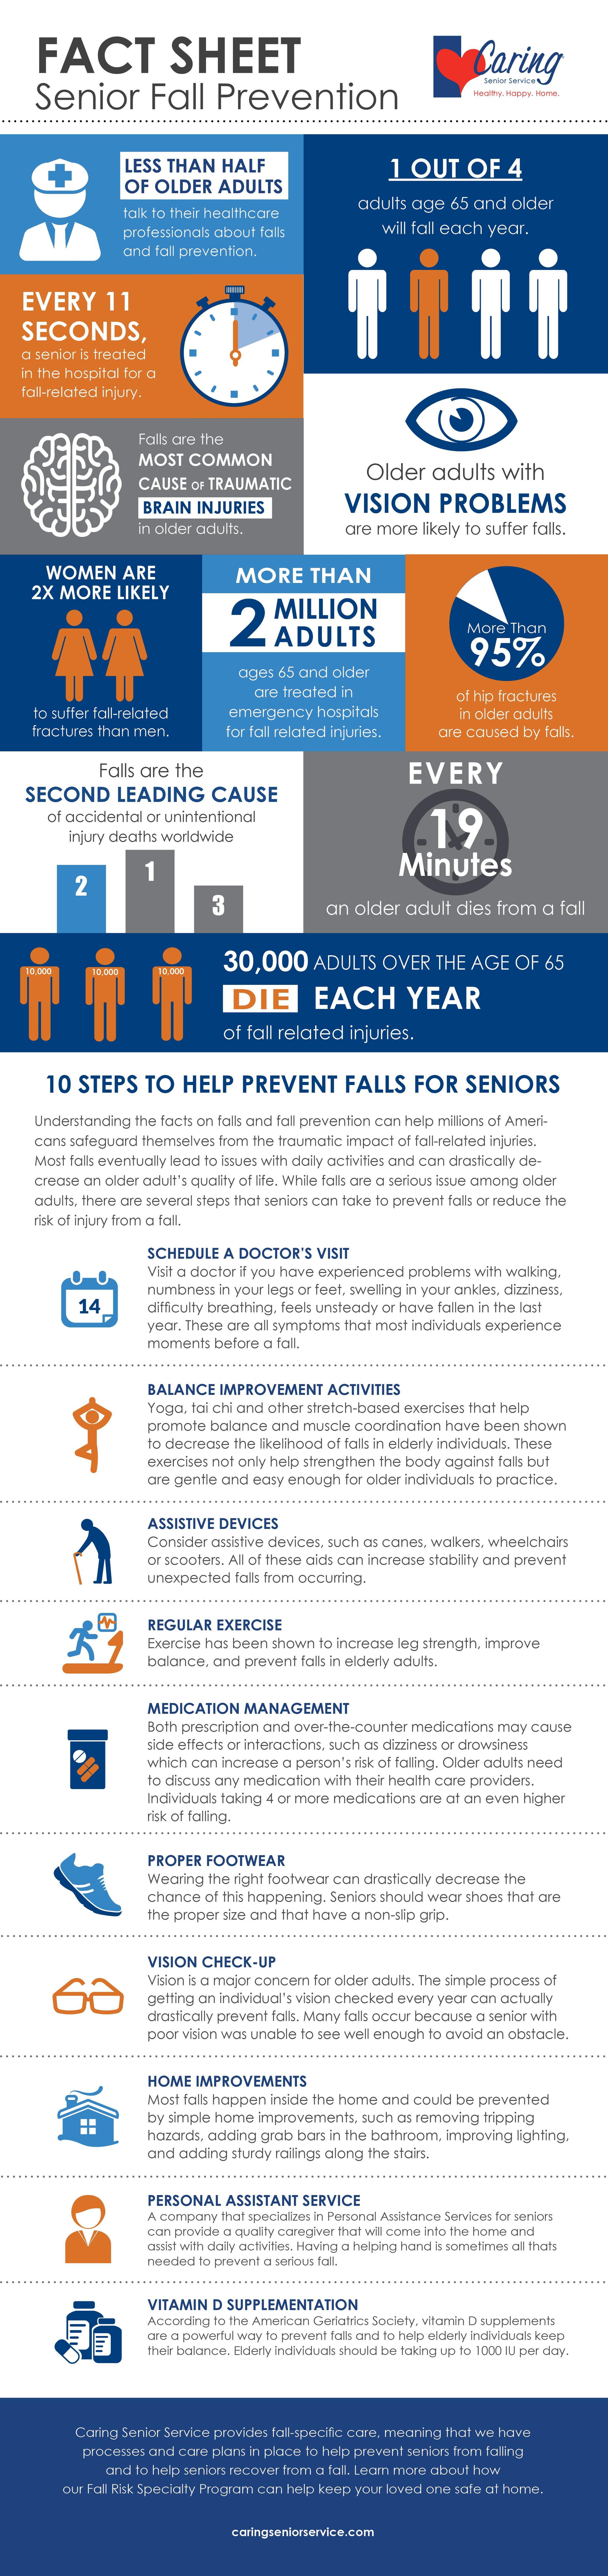 Fall Prevention Fact Sheet